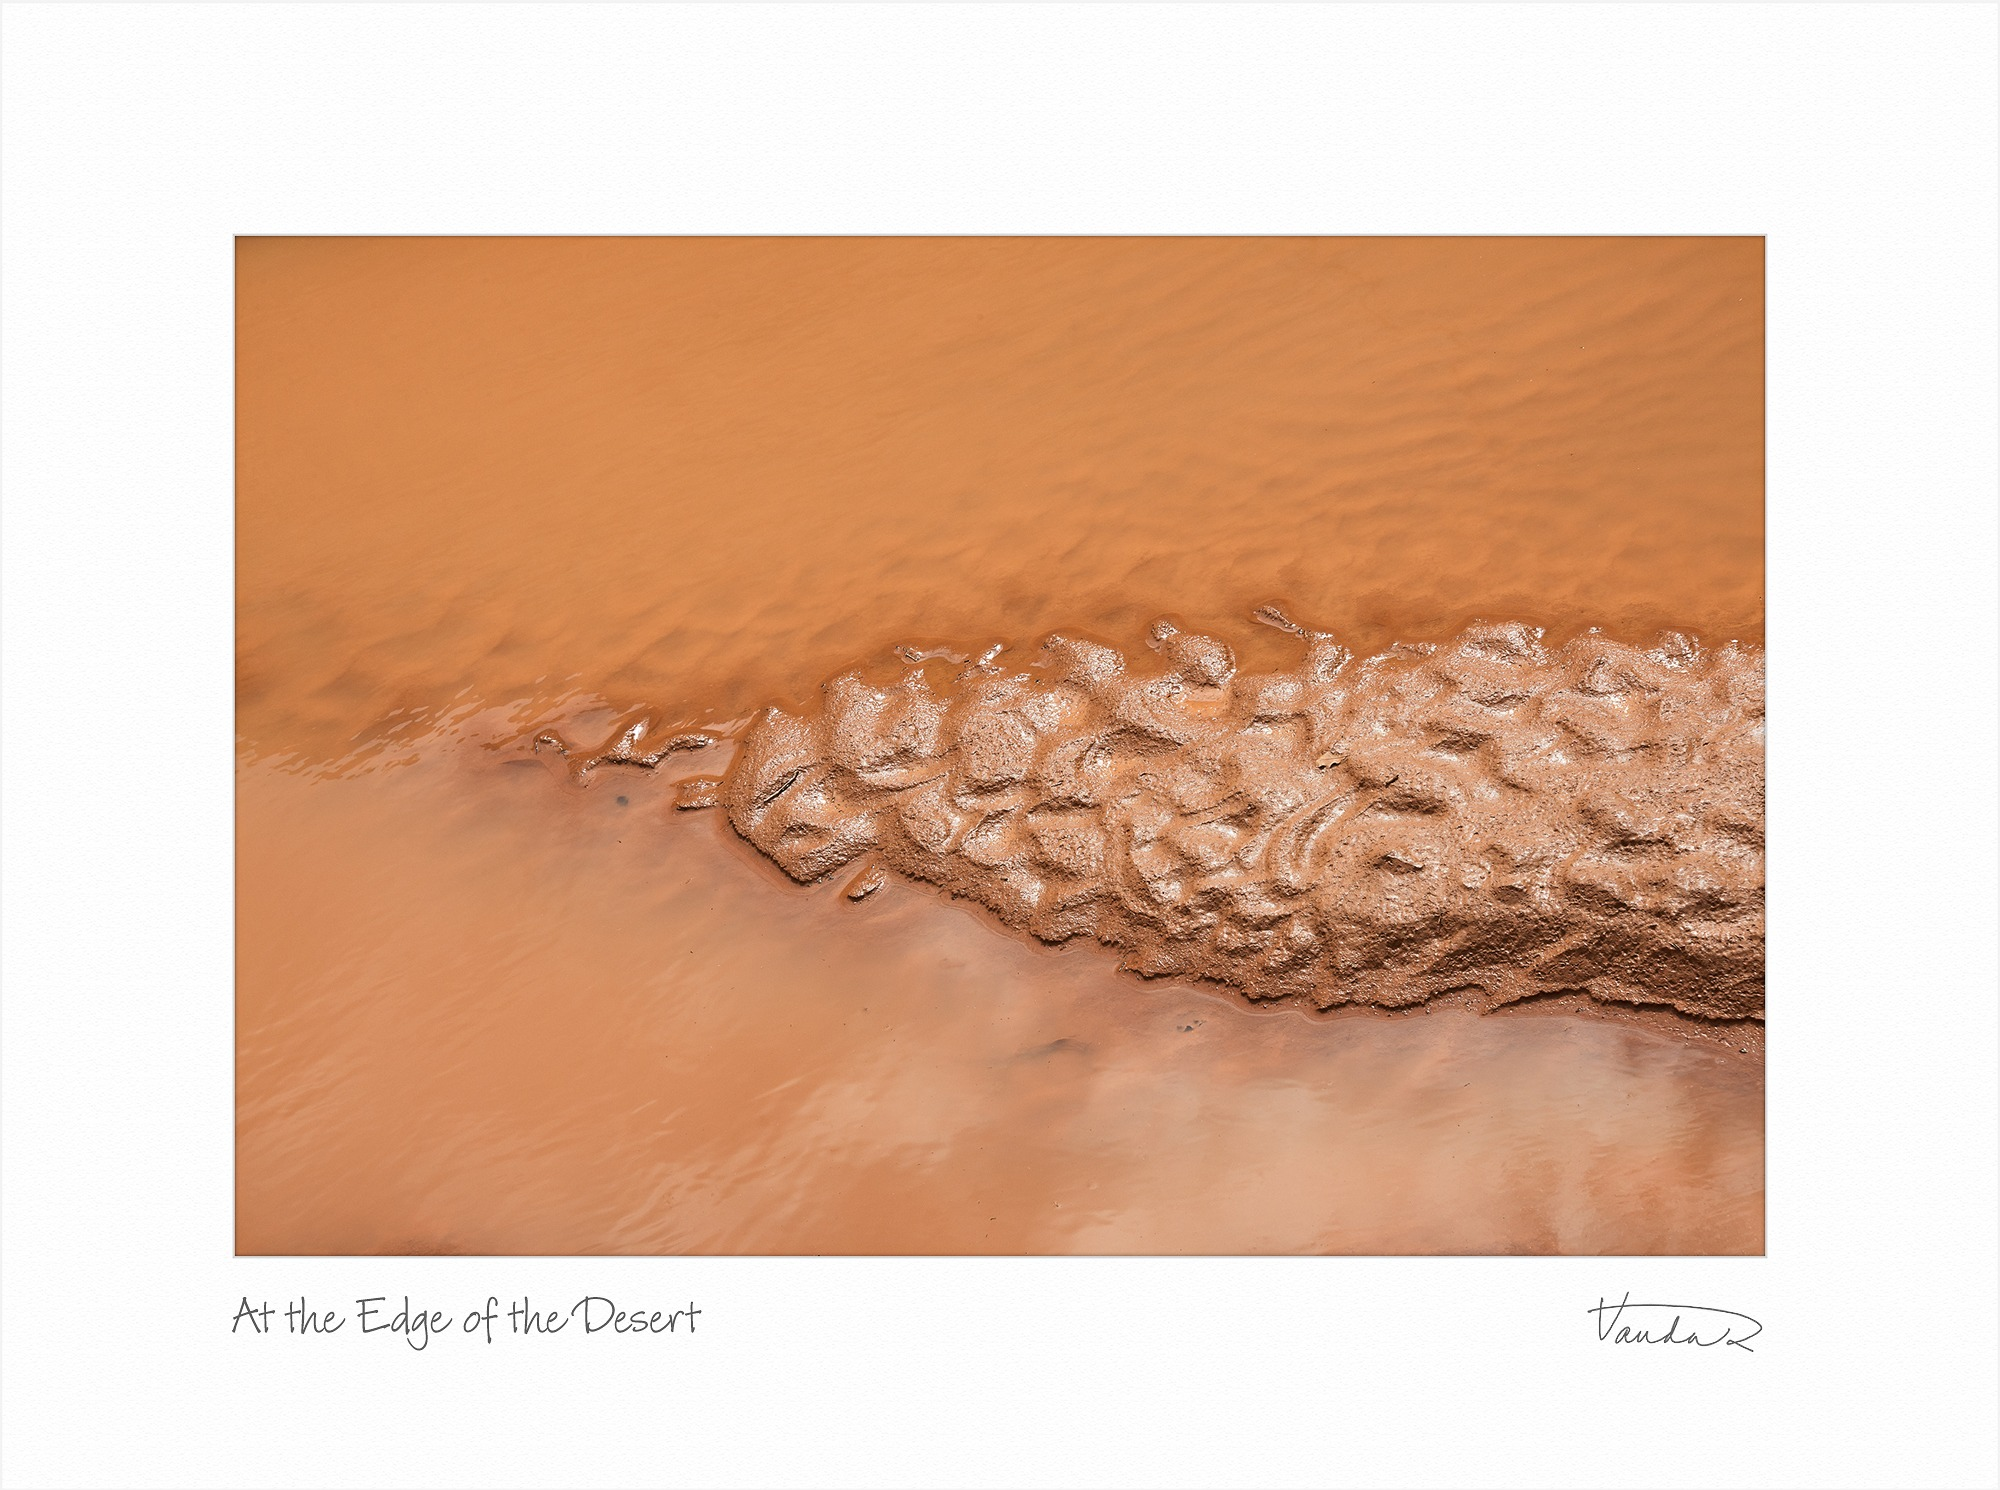 At the Edge of the Desert